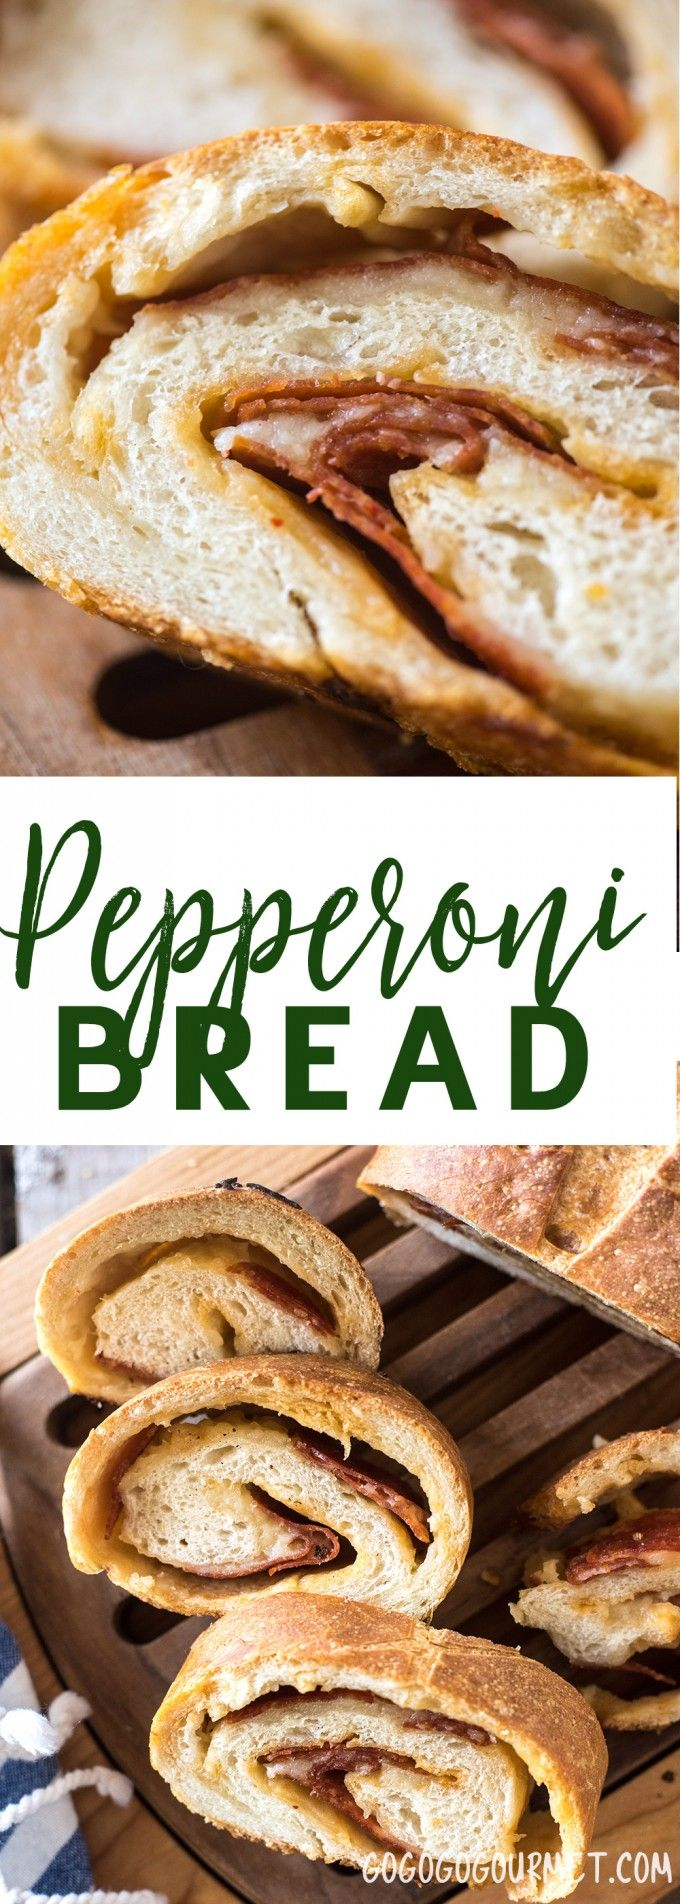 This Pepperoni Bread is a loaf of crusty outside and soft inside Italian bread stuffed with layers of pepperoni and cheese. |  via @gogogogourmet